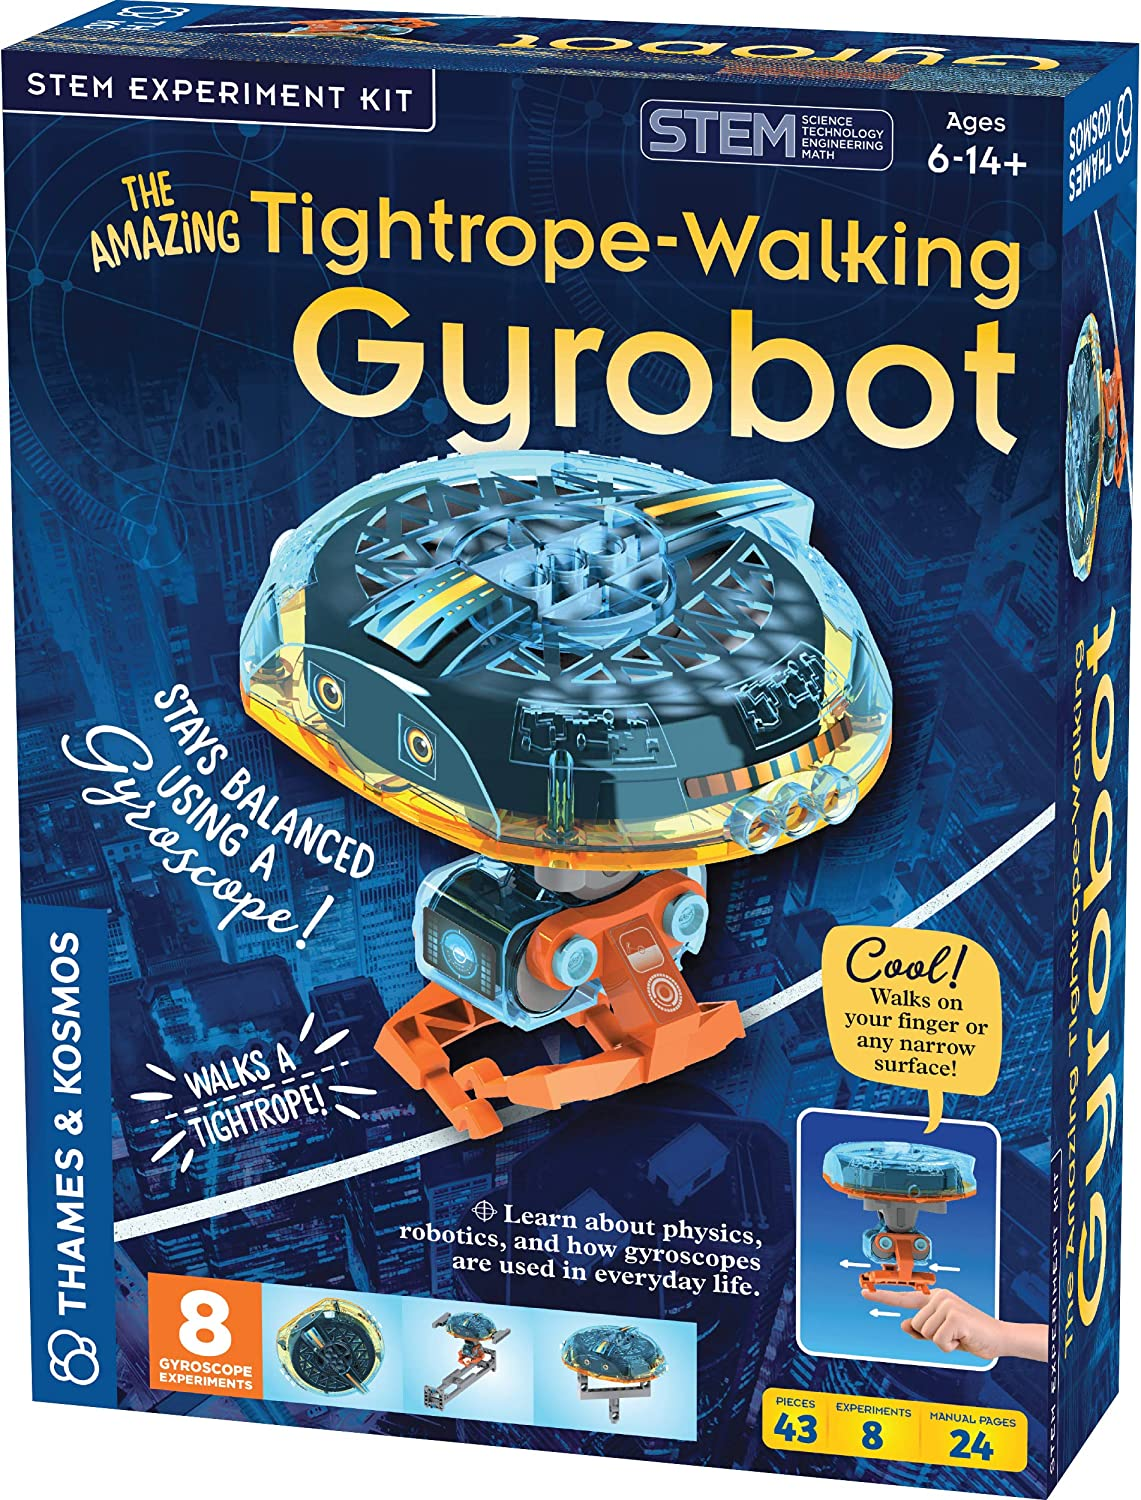 Thames & Kosmos The Amazing Tightrope-Walking Gyrobot STEM Experiment Kit   Build a Robot that Walks on Narrow Surfaces   8 Experiments with Gyroscopic Forces   Includes Parts to Build Tightrope Setup